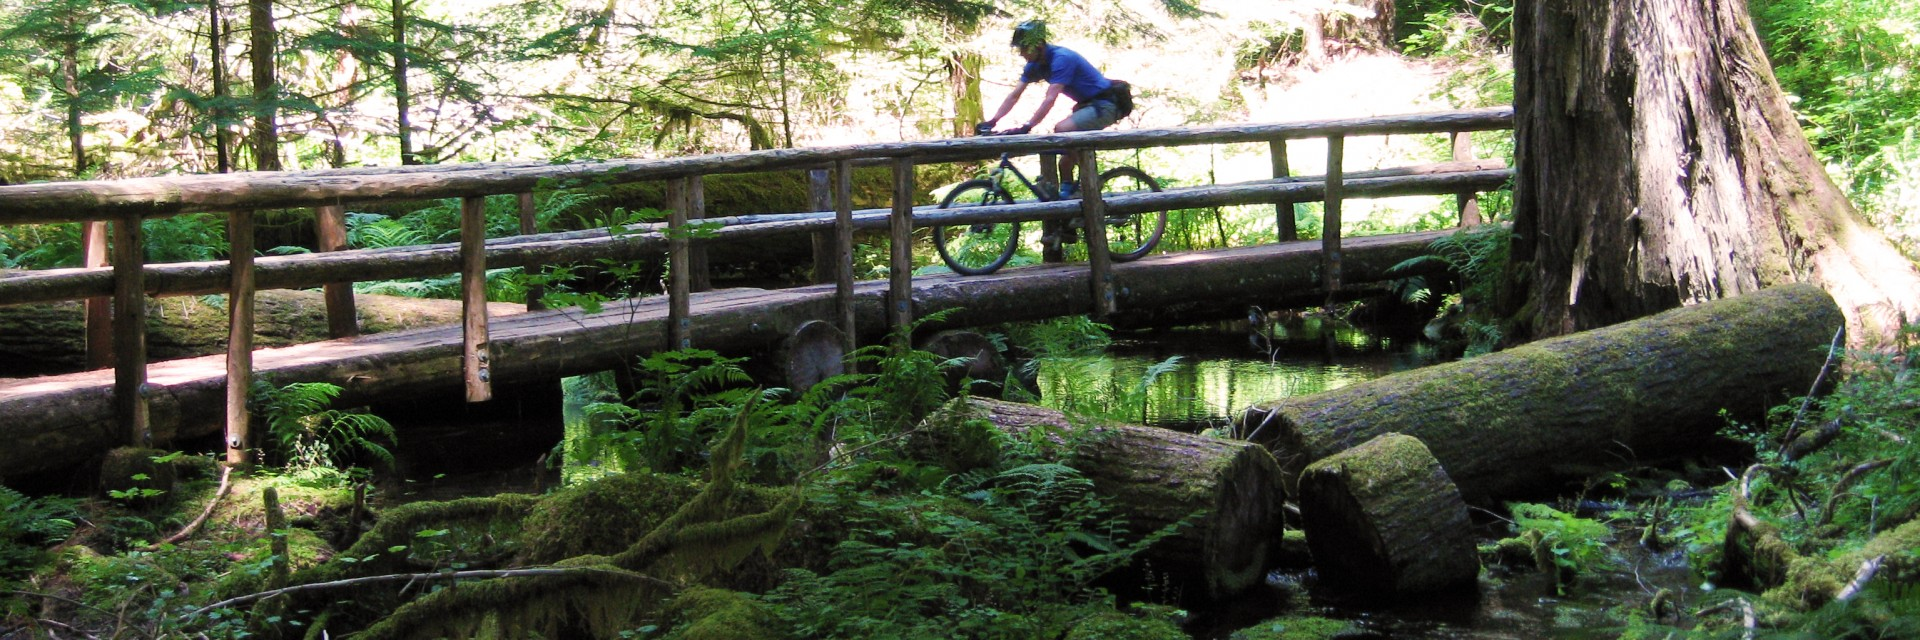 A mountain bike rider crosses a split log bridge on the guided Oregon Cascade Singletrack tour near Bend OR